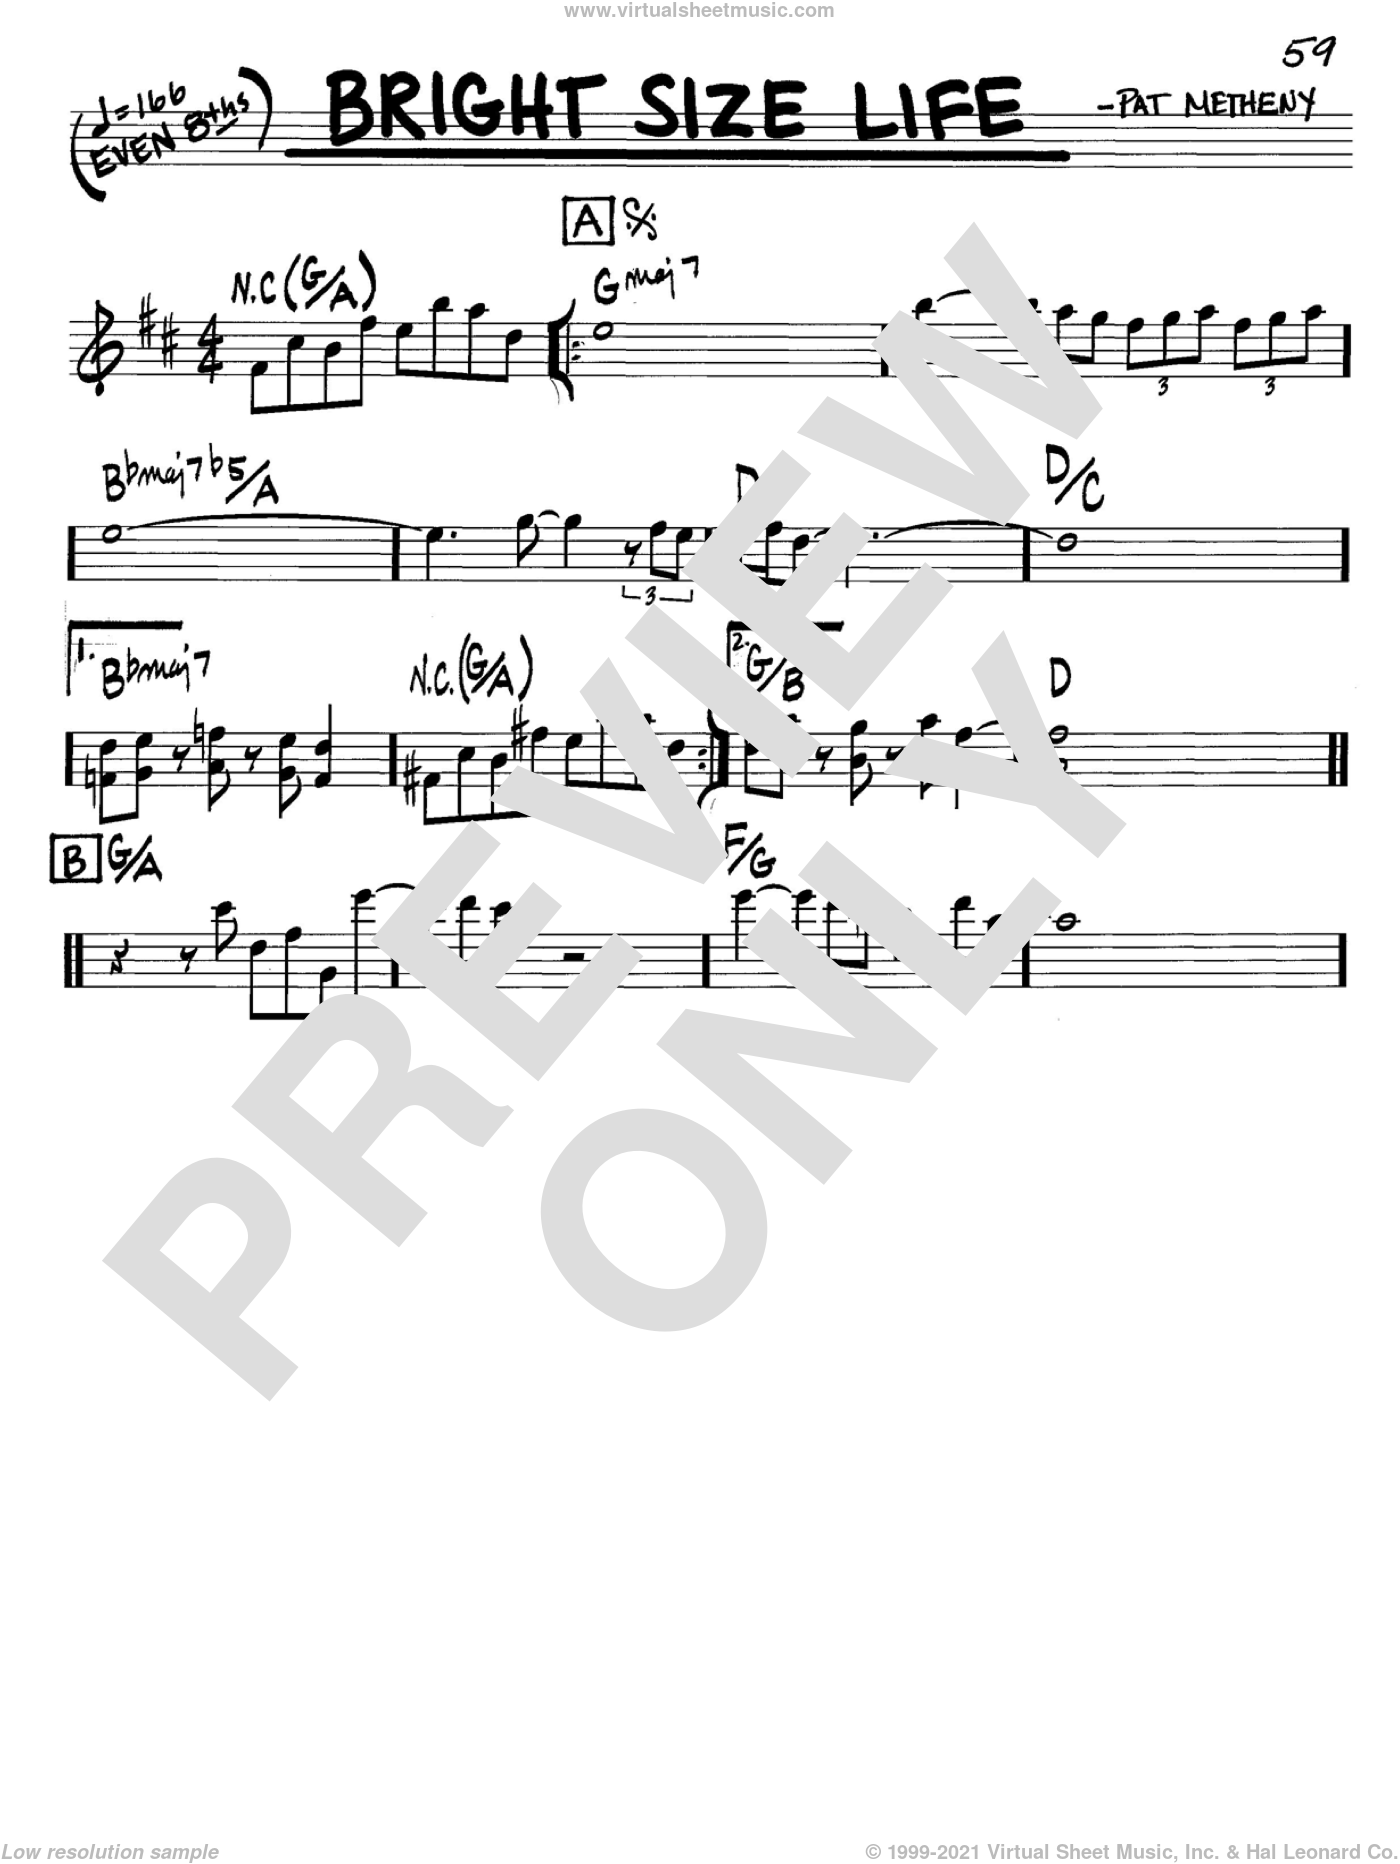 Bright Size Life sheet music for voice and other instruments (C) by Pat Metheny